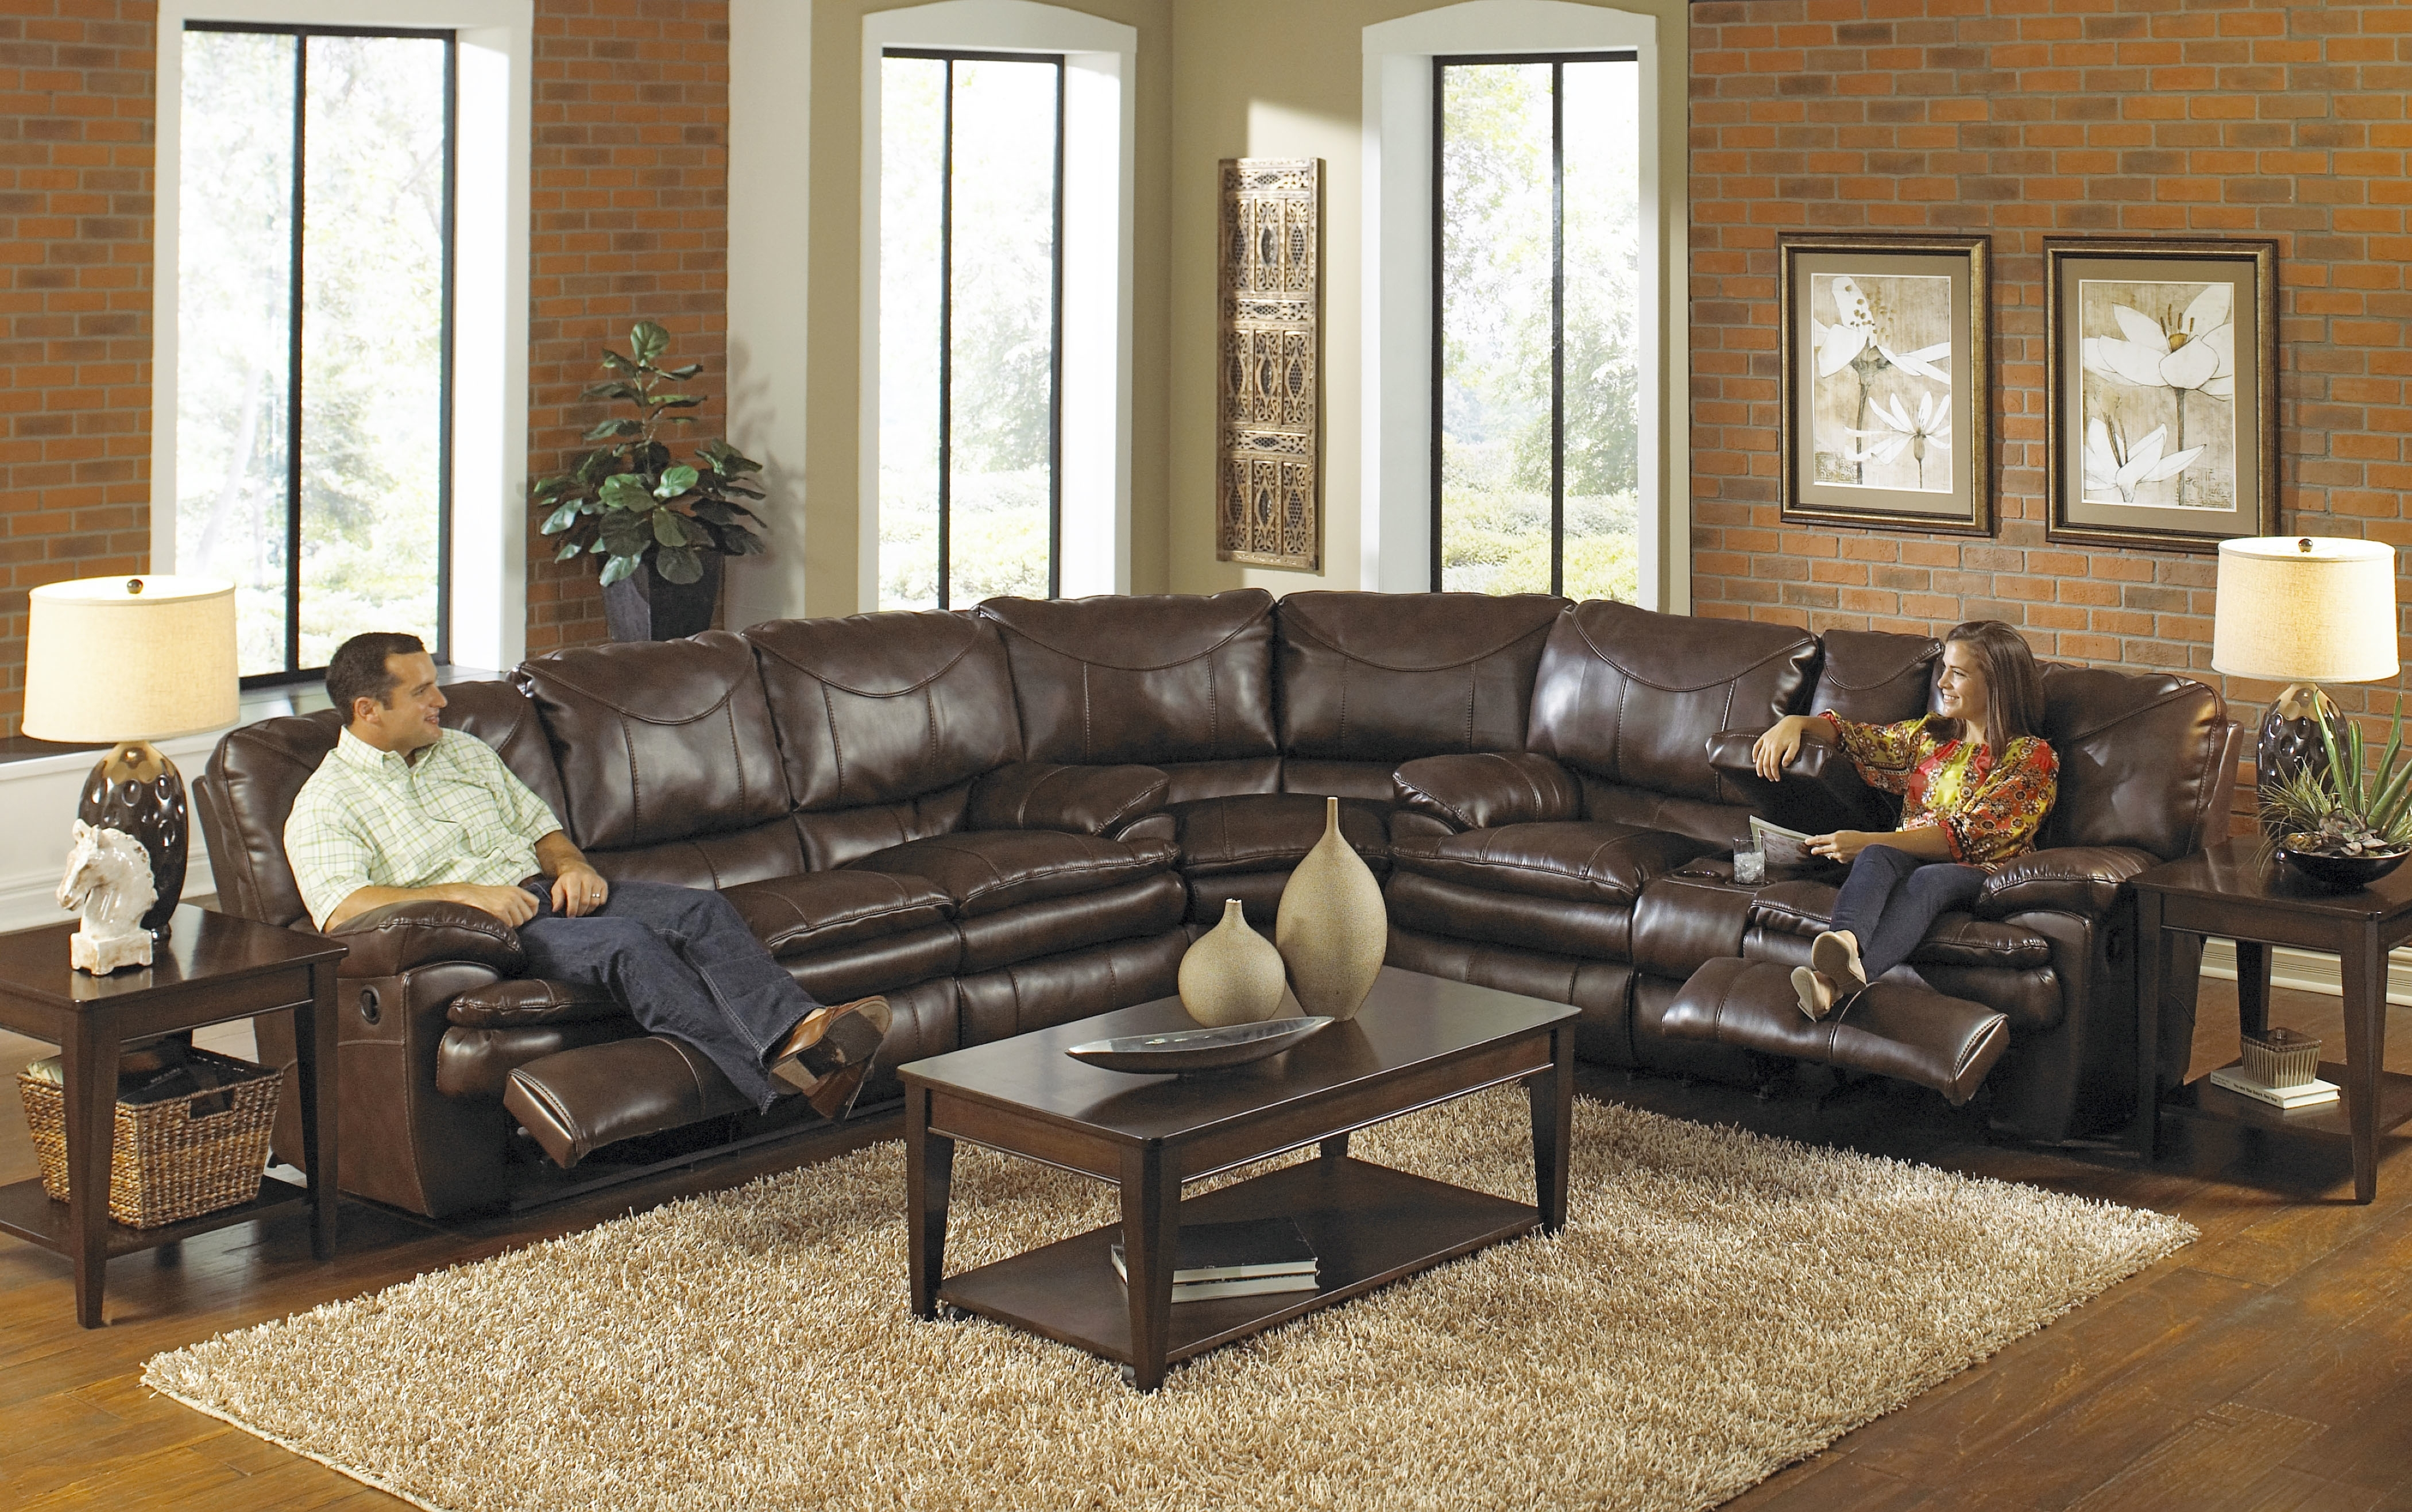 High Quality Leather Sectional Sofas – Radiovannes For High End Leather Sectional Sofas (View 2 of 10)